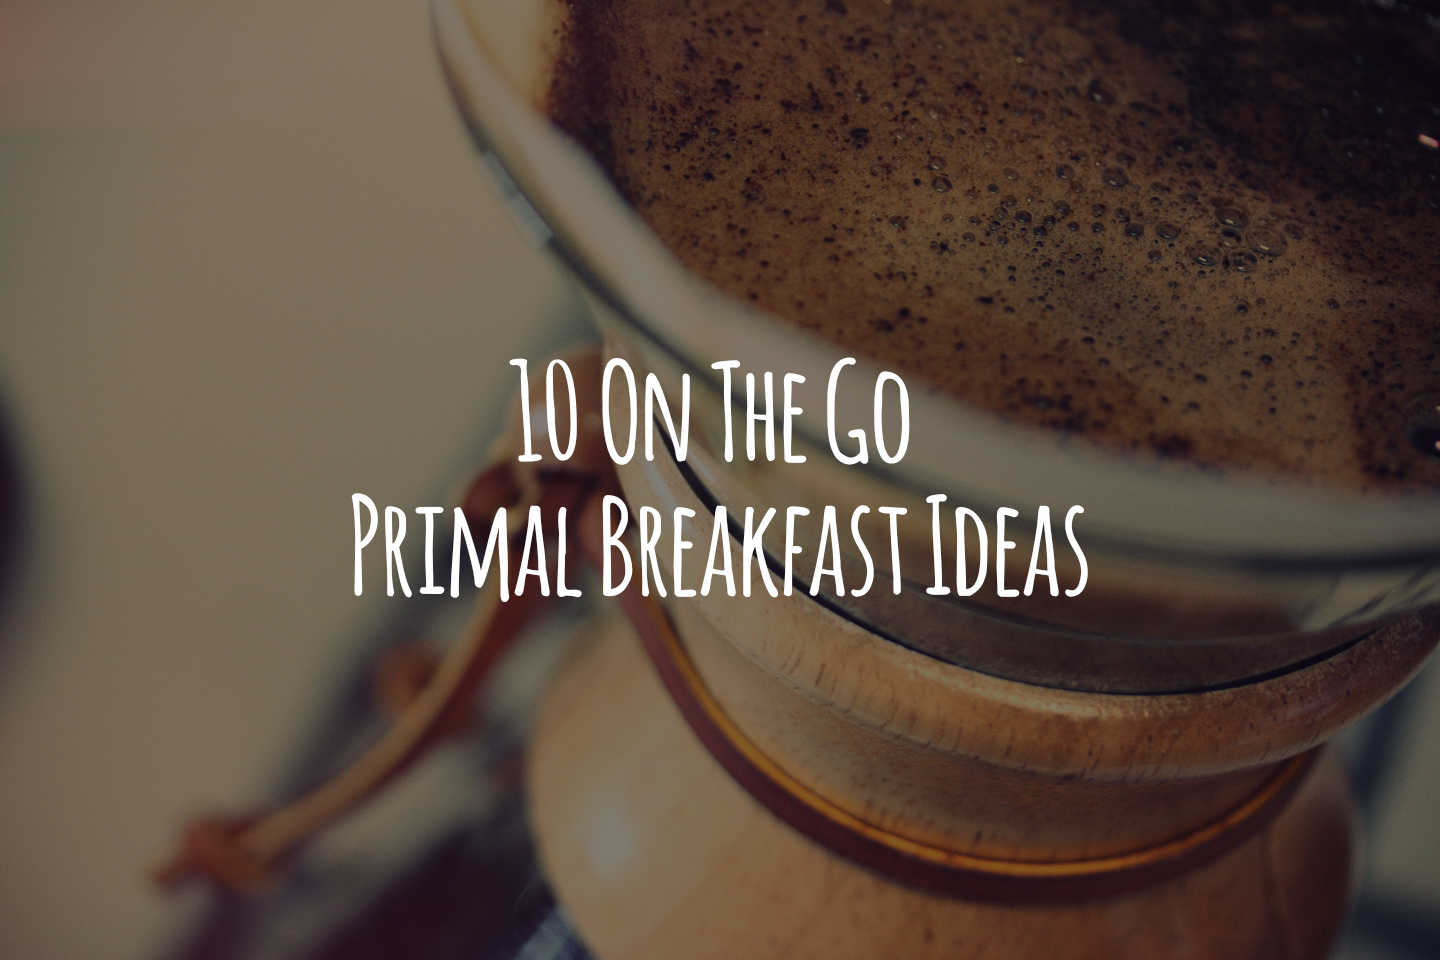 10 On The Go Primal Breakfast Ideas